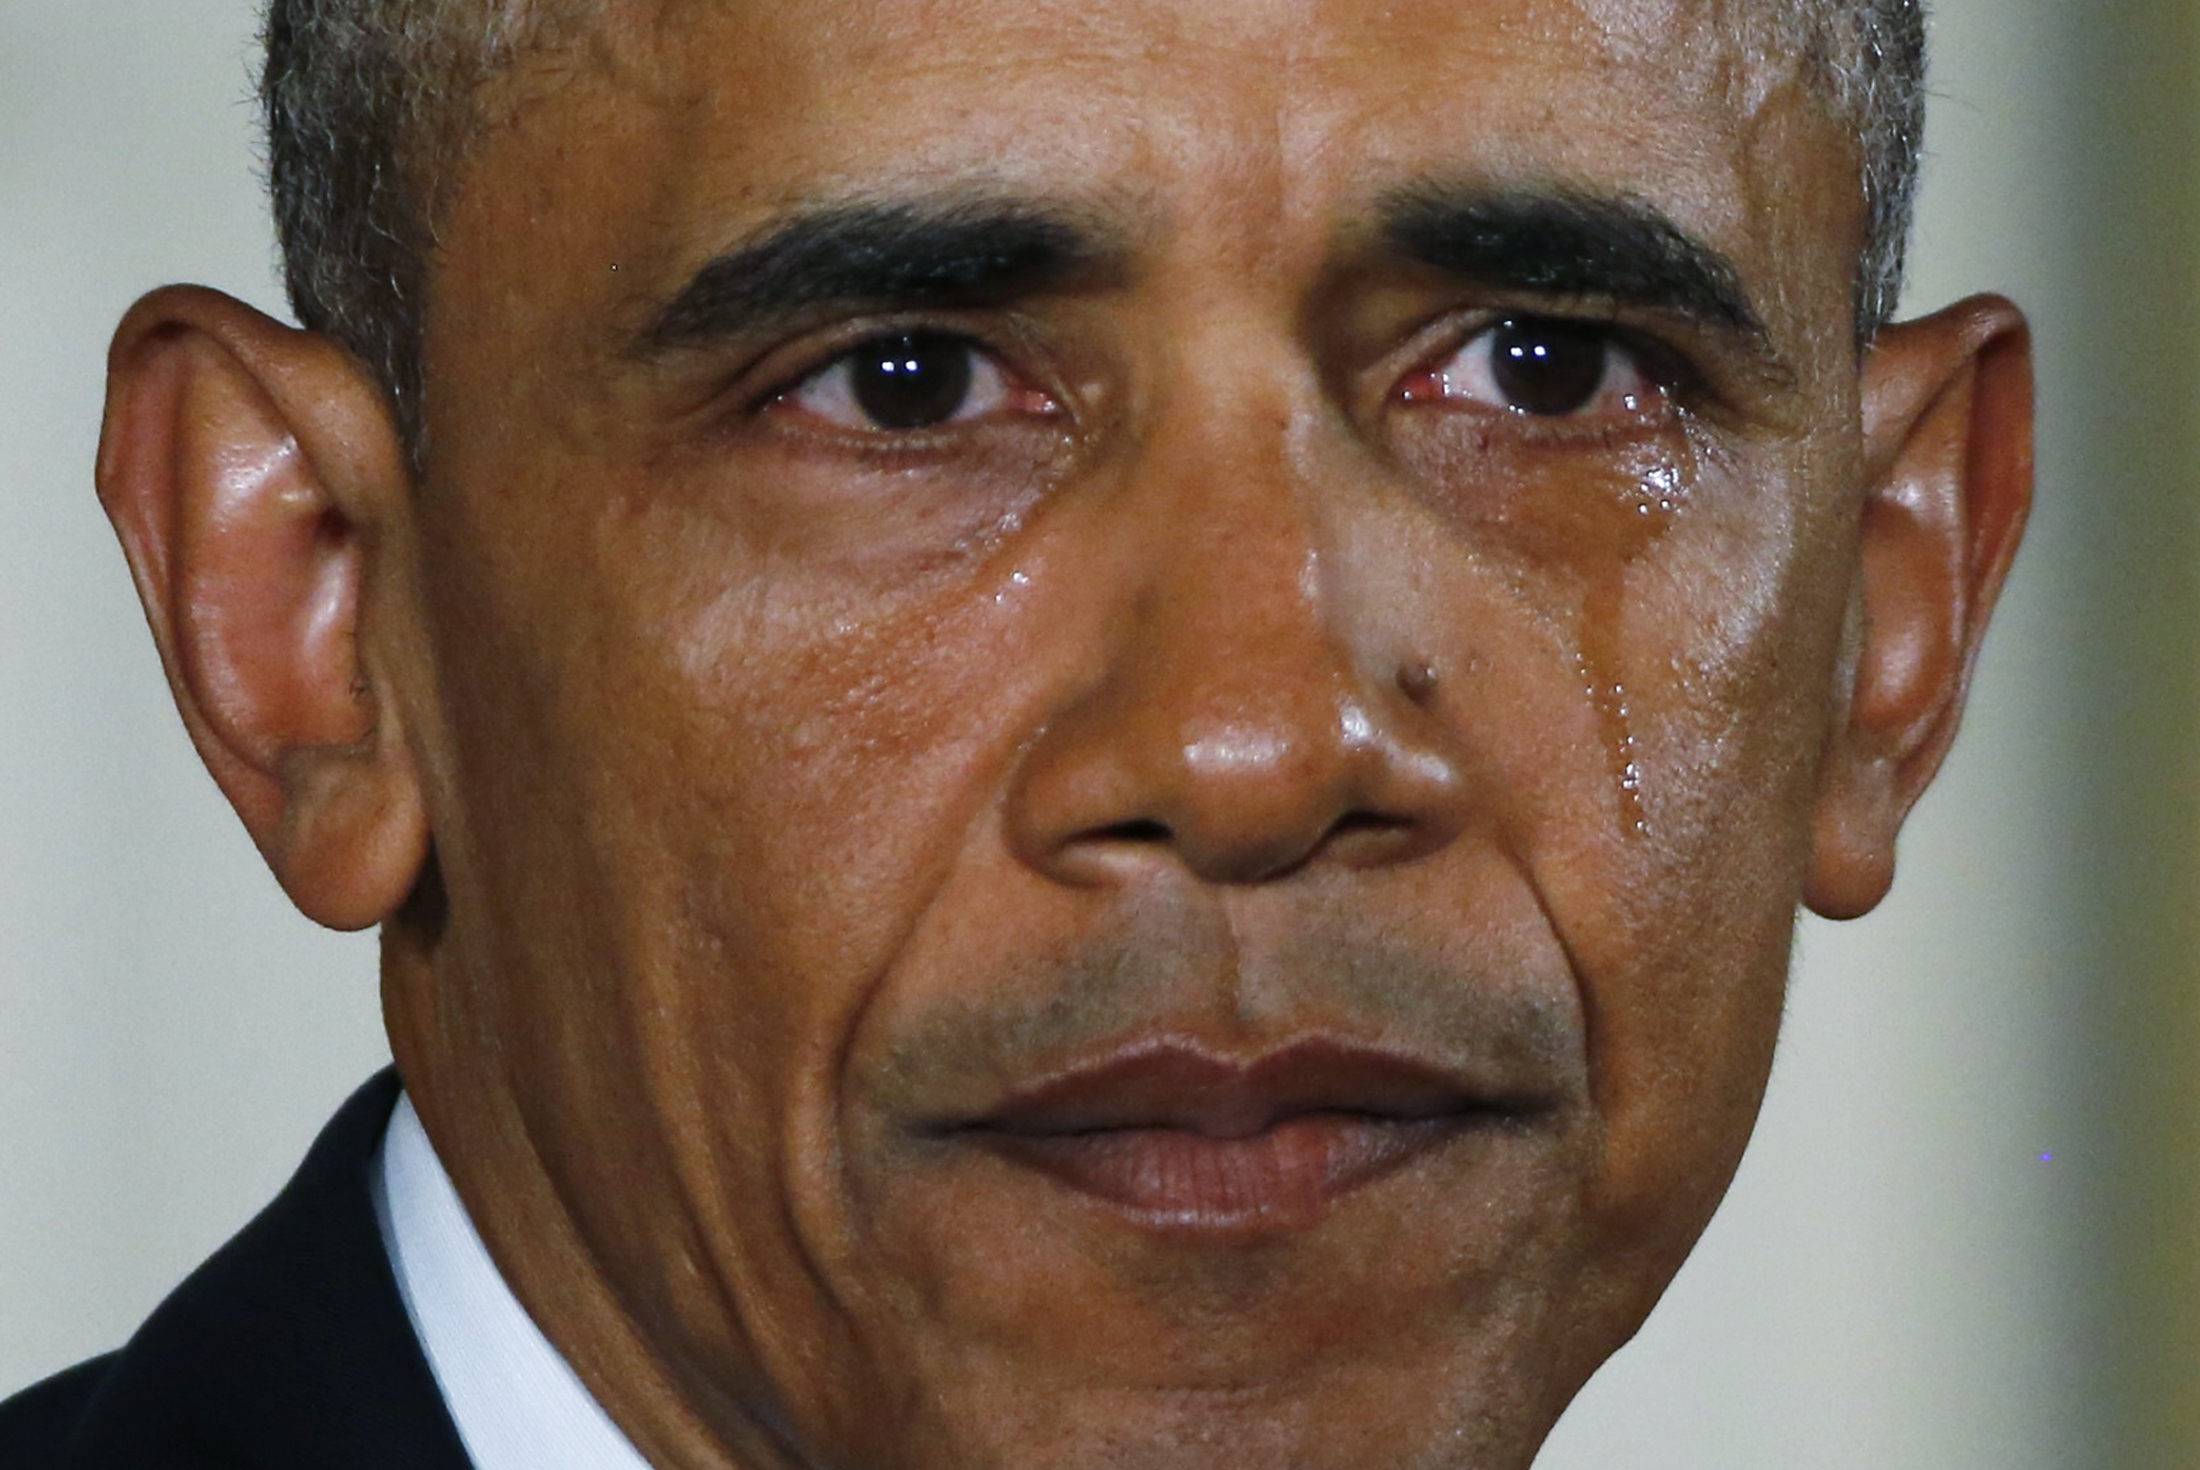 Image result for obama sad